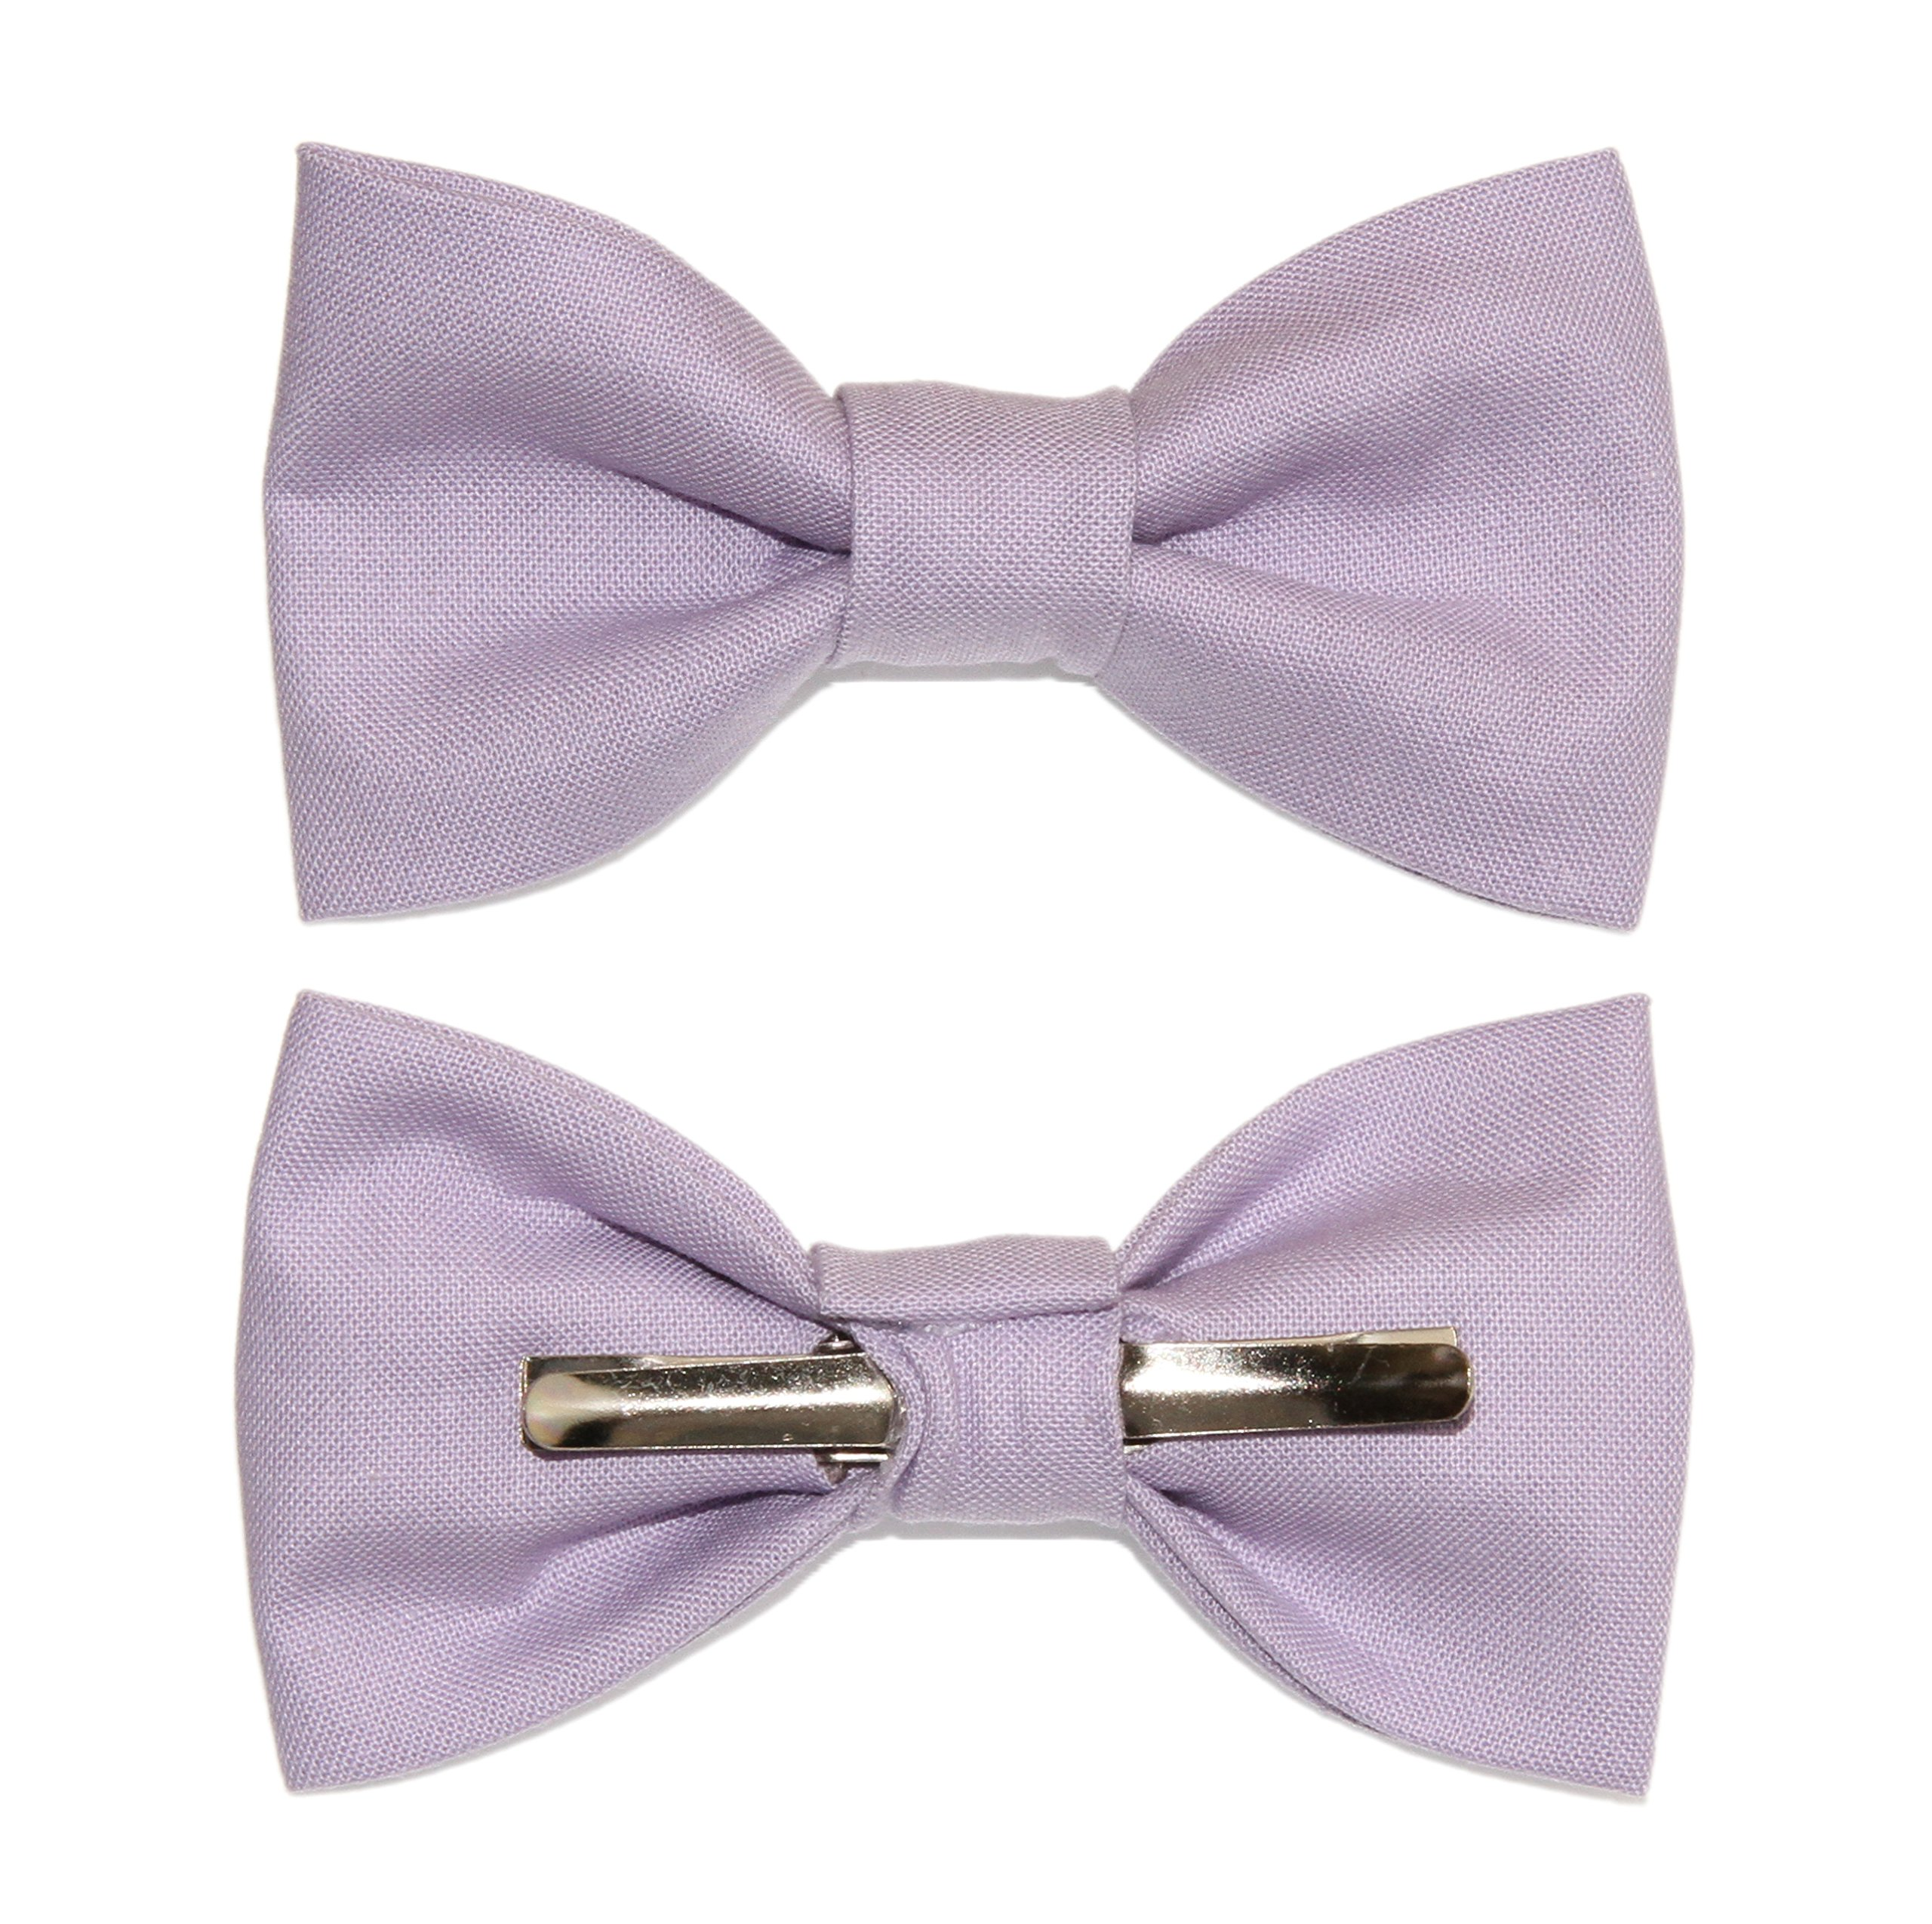 Toddler Boy 4T 5T Lilac Purple Clip On Cotton Bow Tie - Made In The USA